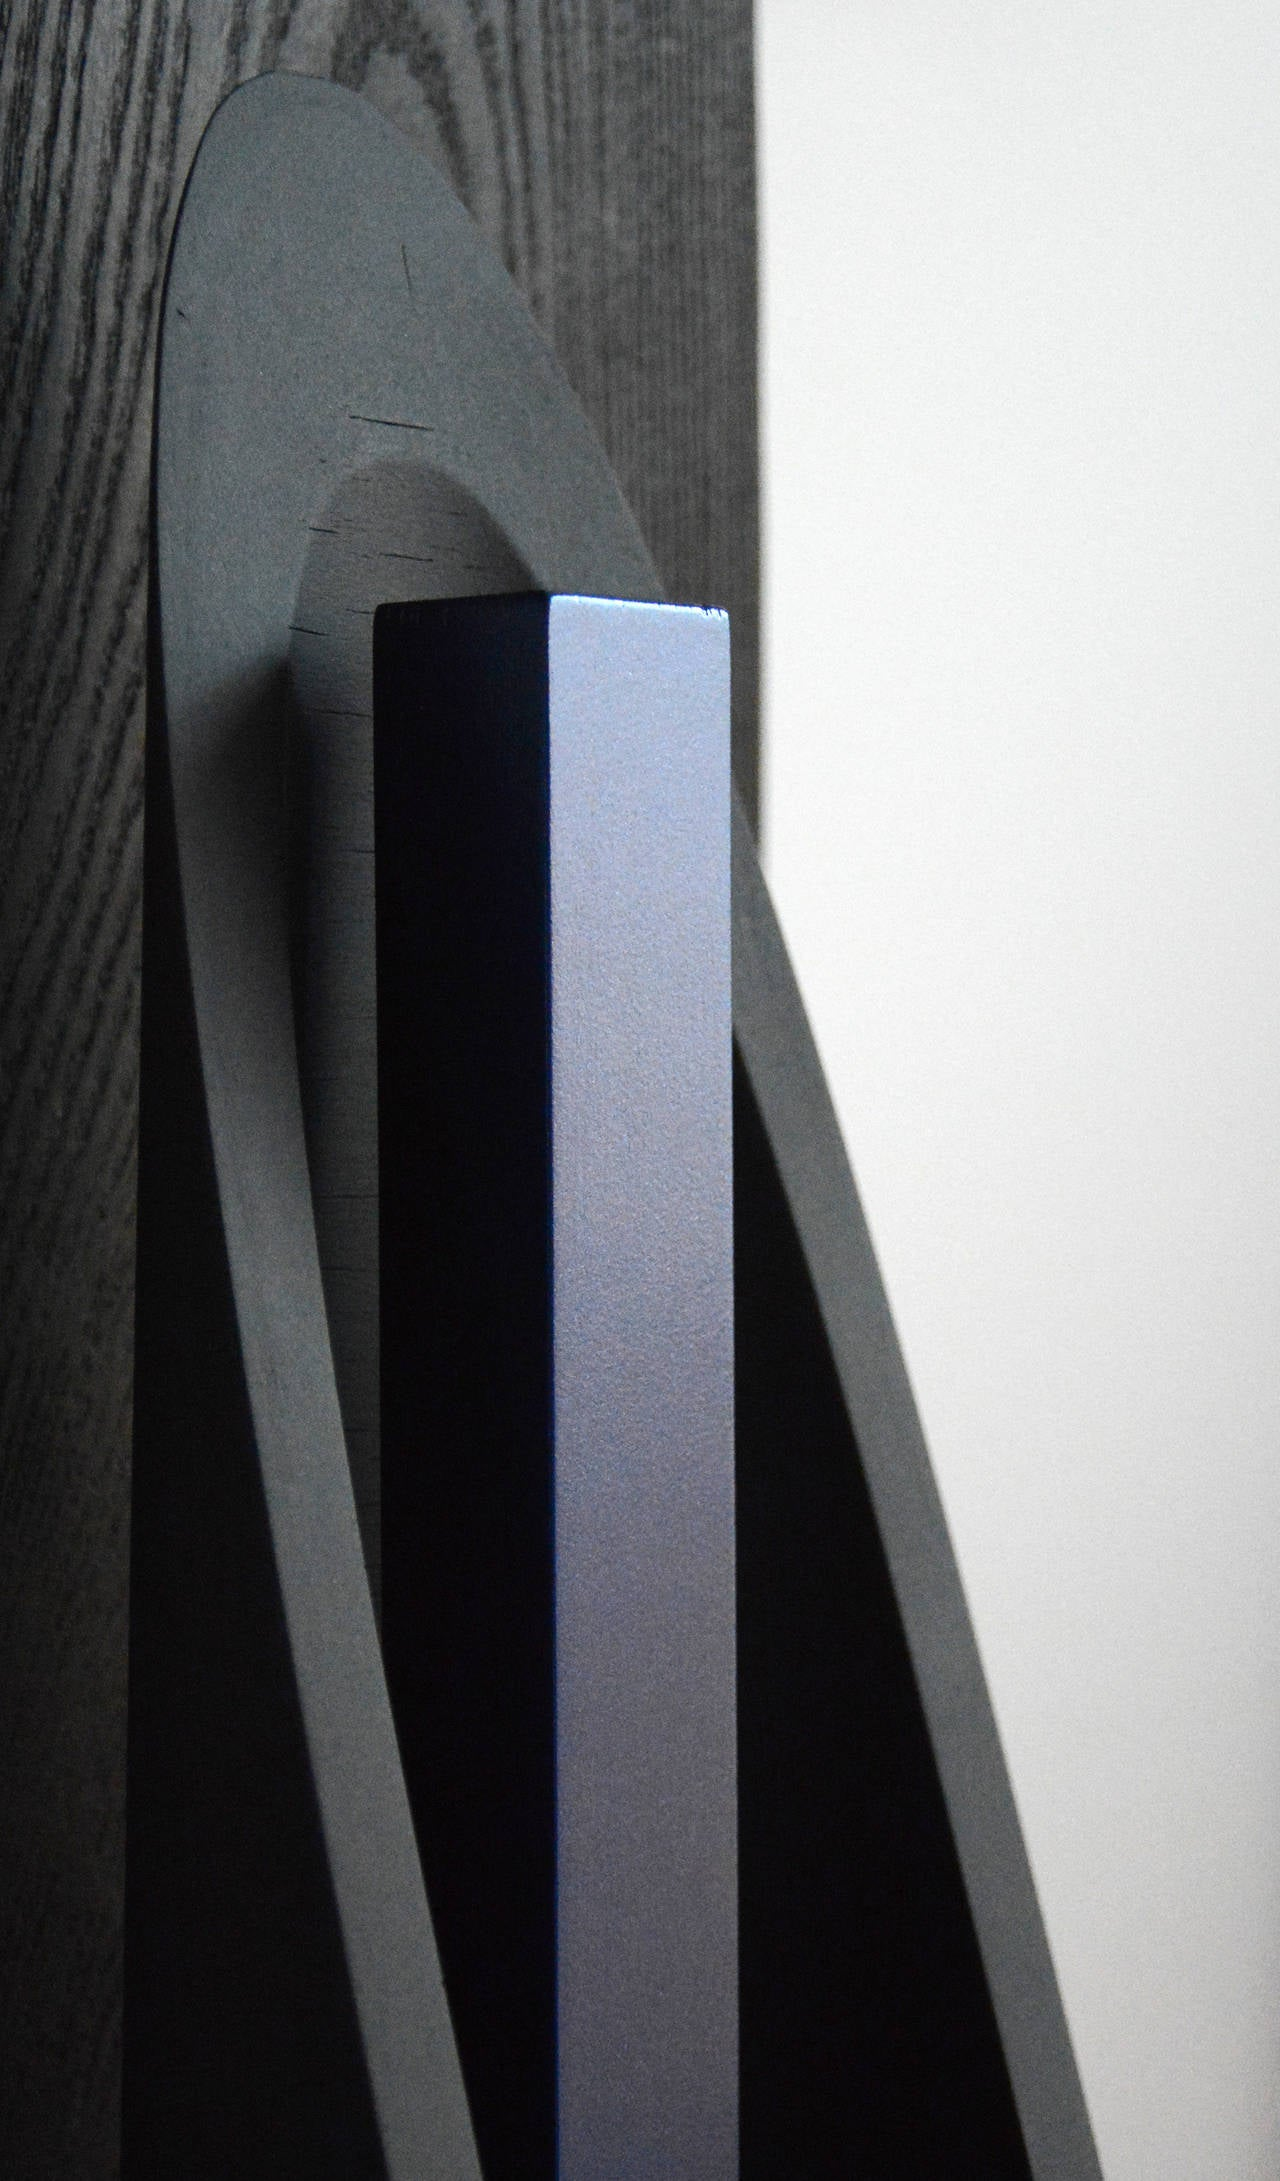 This sculpture is created with carved and charred, burnished wood. The black  matte finish of the taller elements exist in sharp contrast with the high gloss blue enamel finish of the central figure.  Sculptor Edward Falkenberg, RCA, attended the